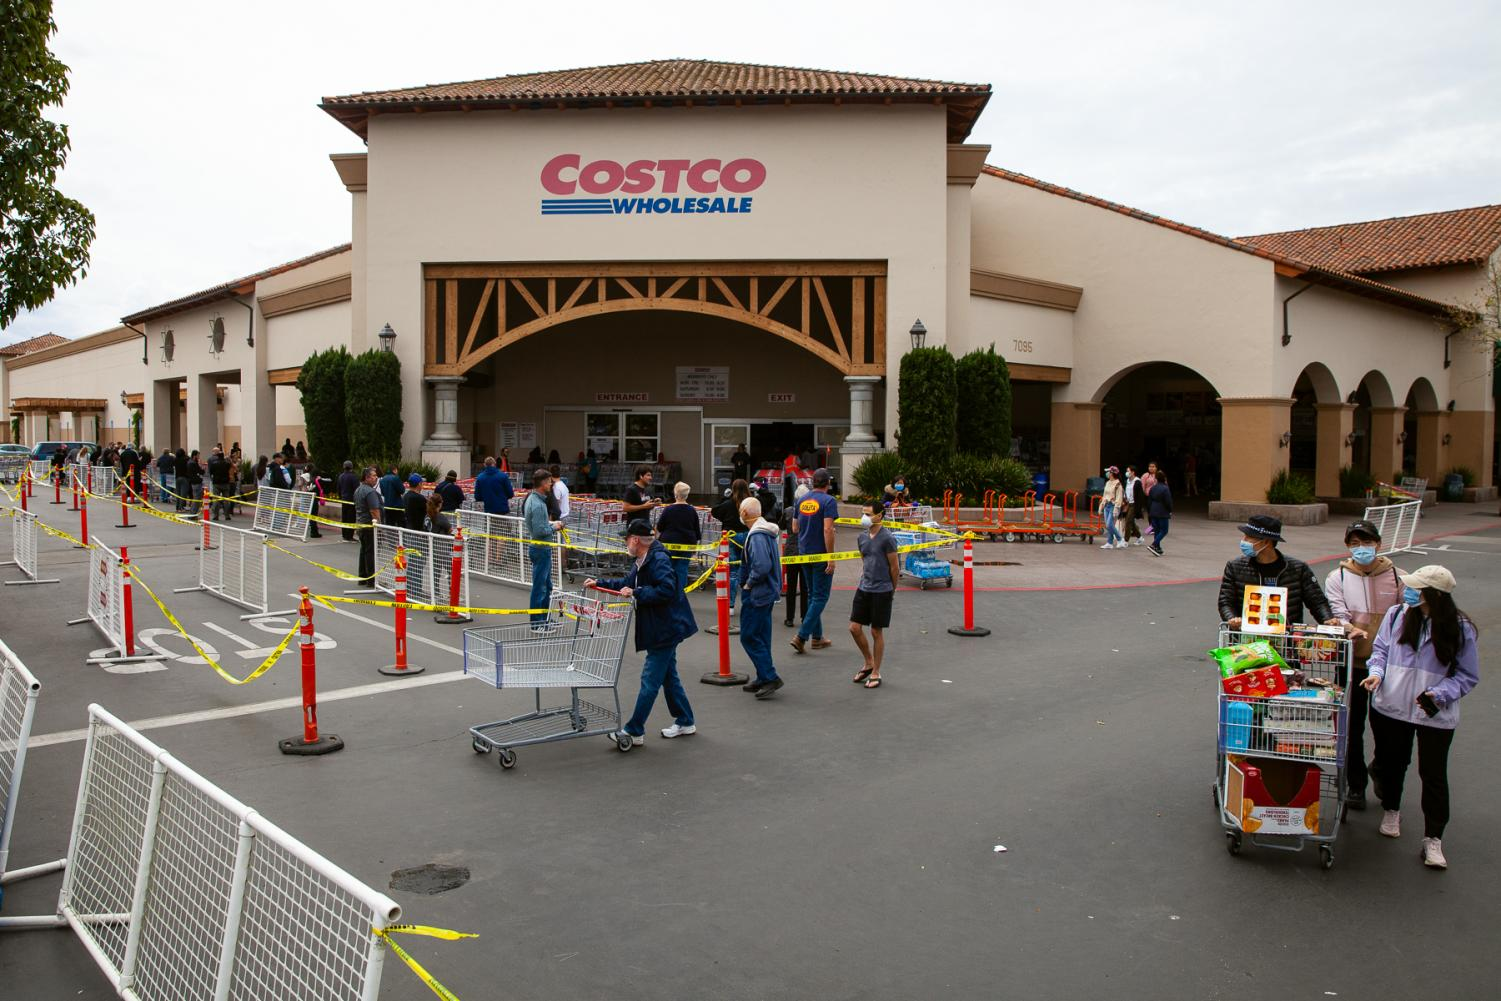 Shoppers lineup outside Costco the morning after Gavin Newsom issued a state wide shelter-in-place order on Friday, March 20, in Goleta, Calif. Costco limits its capacity to 50 shoppers at a time.